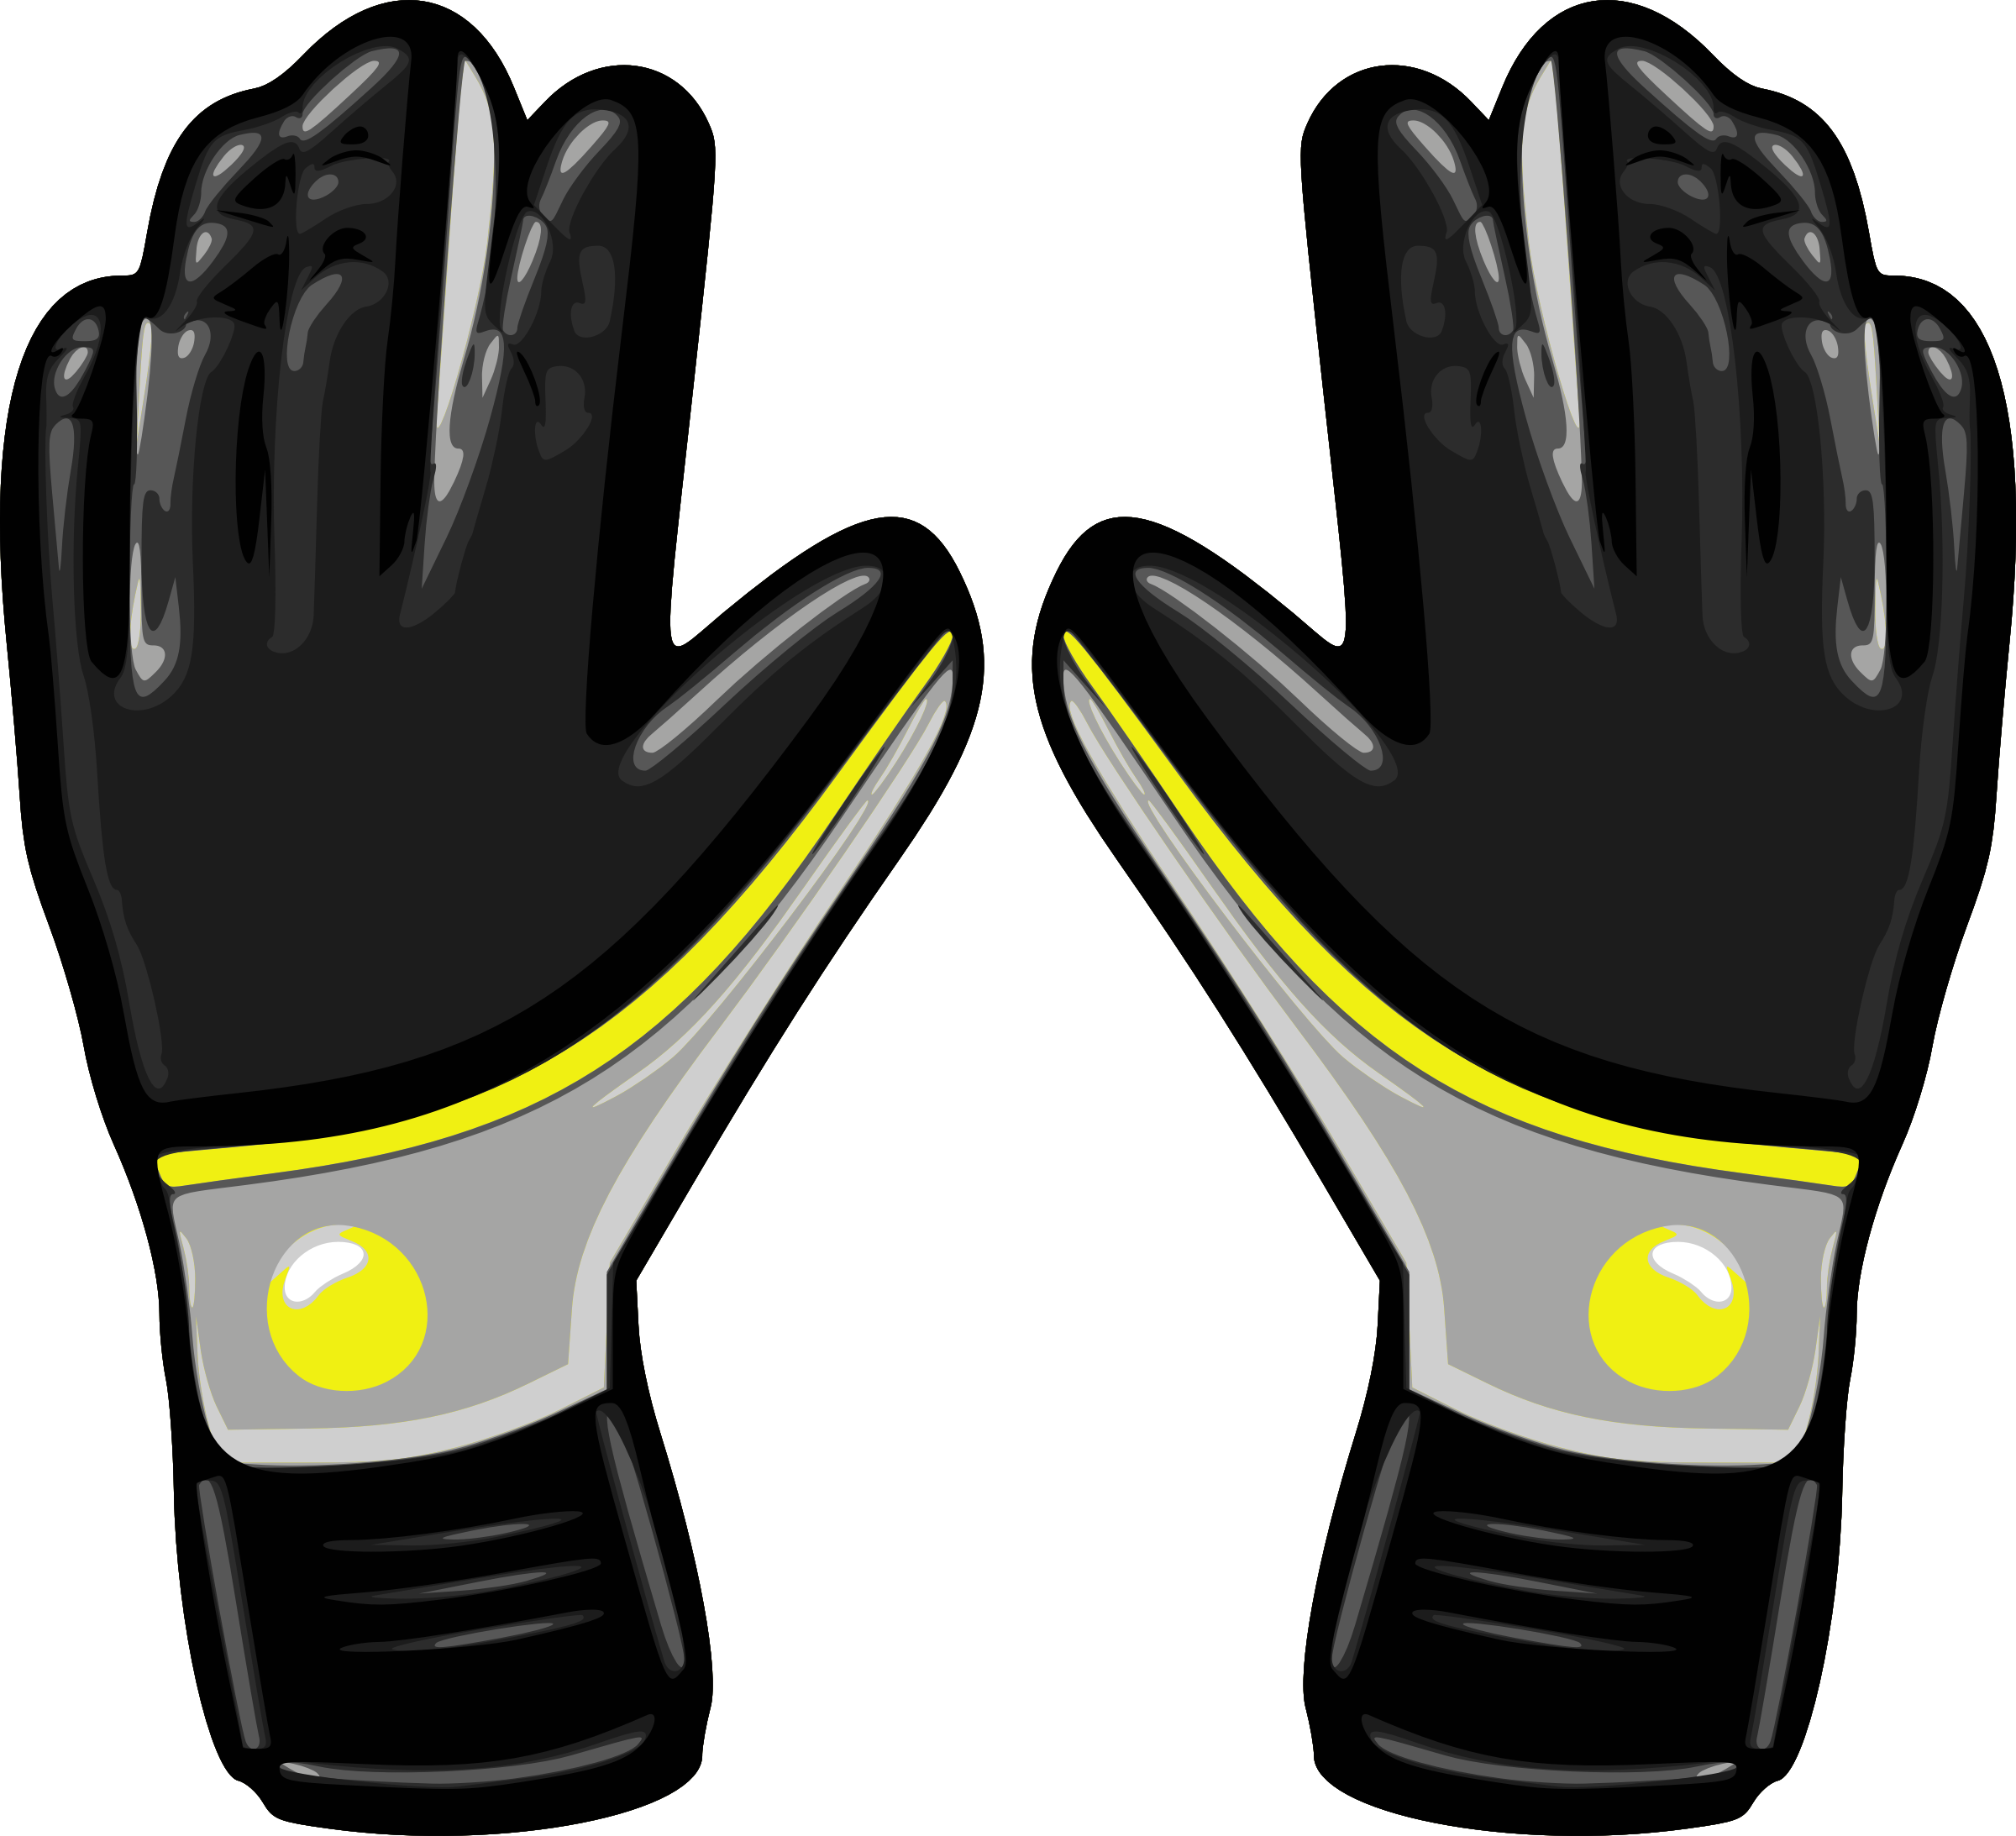 Football glove clipart image free download Clipart - Gloves 5 image free download